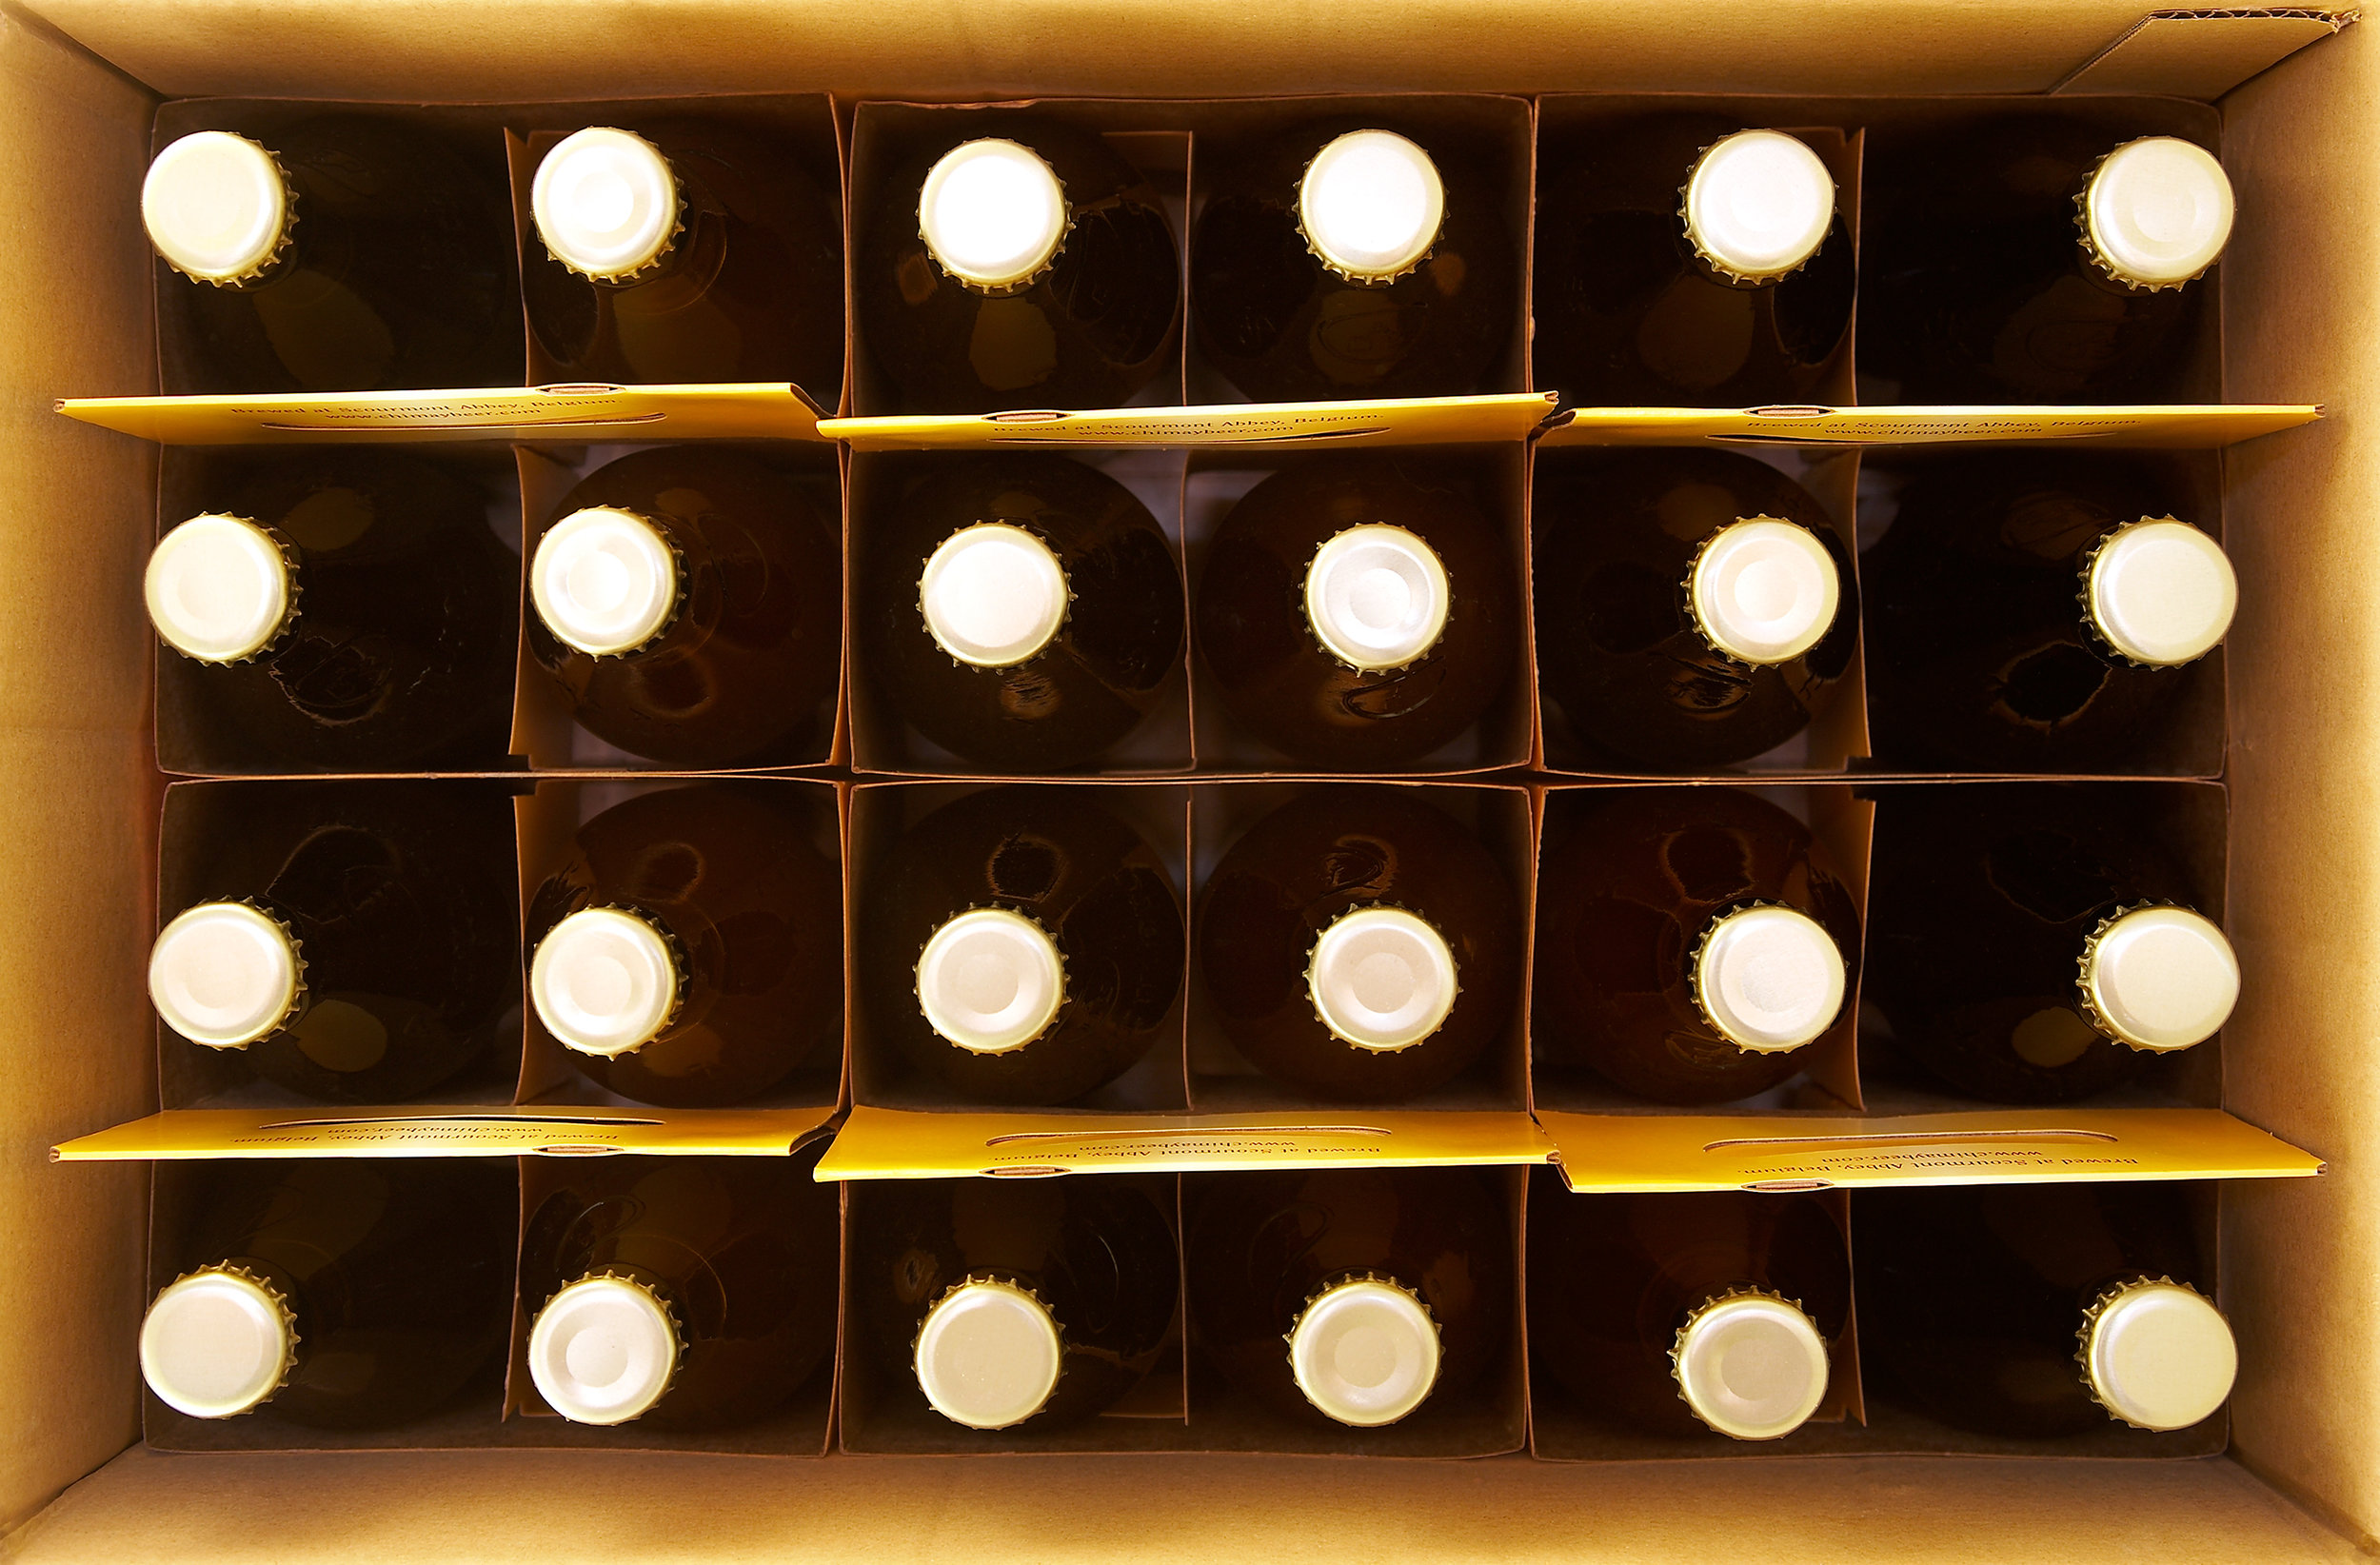 BEER-BOTTLED-ORGANIC-FARM-LIFESTYLE-HOMEADE-BEER-©-JONATHAN-BECKERMAN-PHOTOGRAPHY.jpg